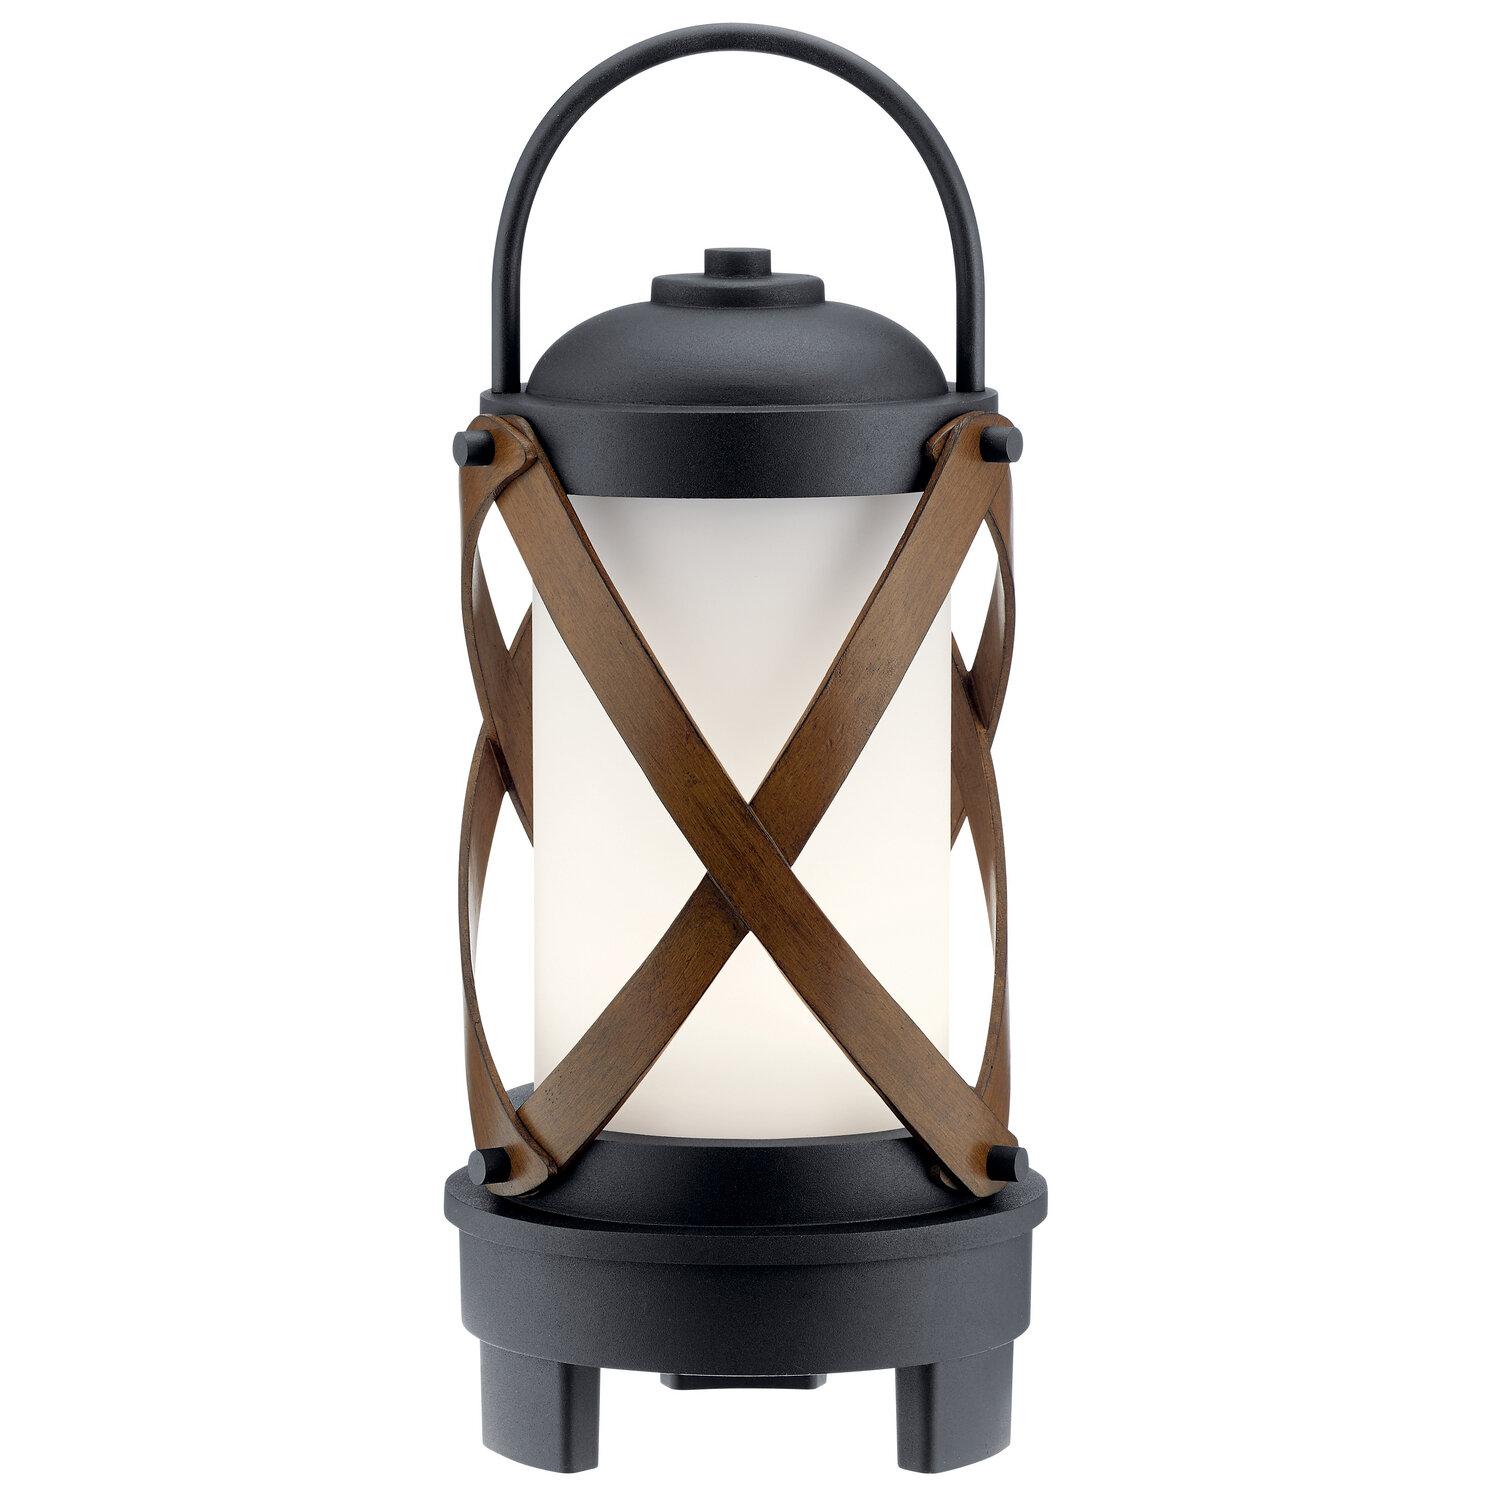 Brryhll Textured Black LED Exterior Lantern w/Bluetooth